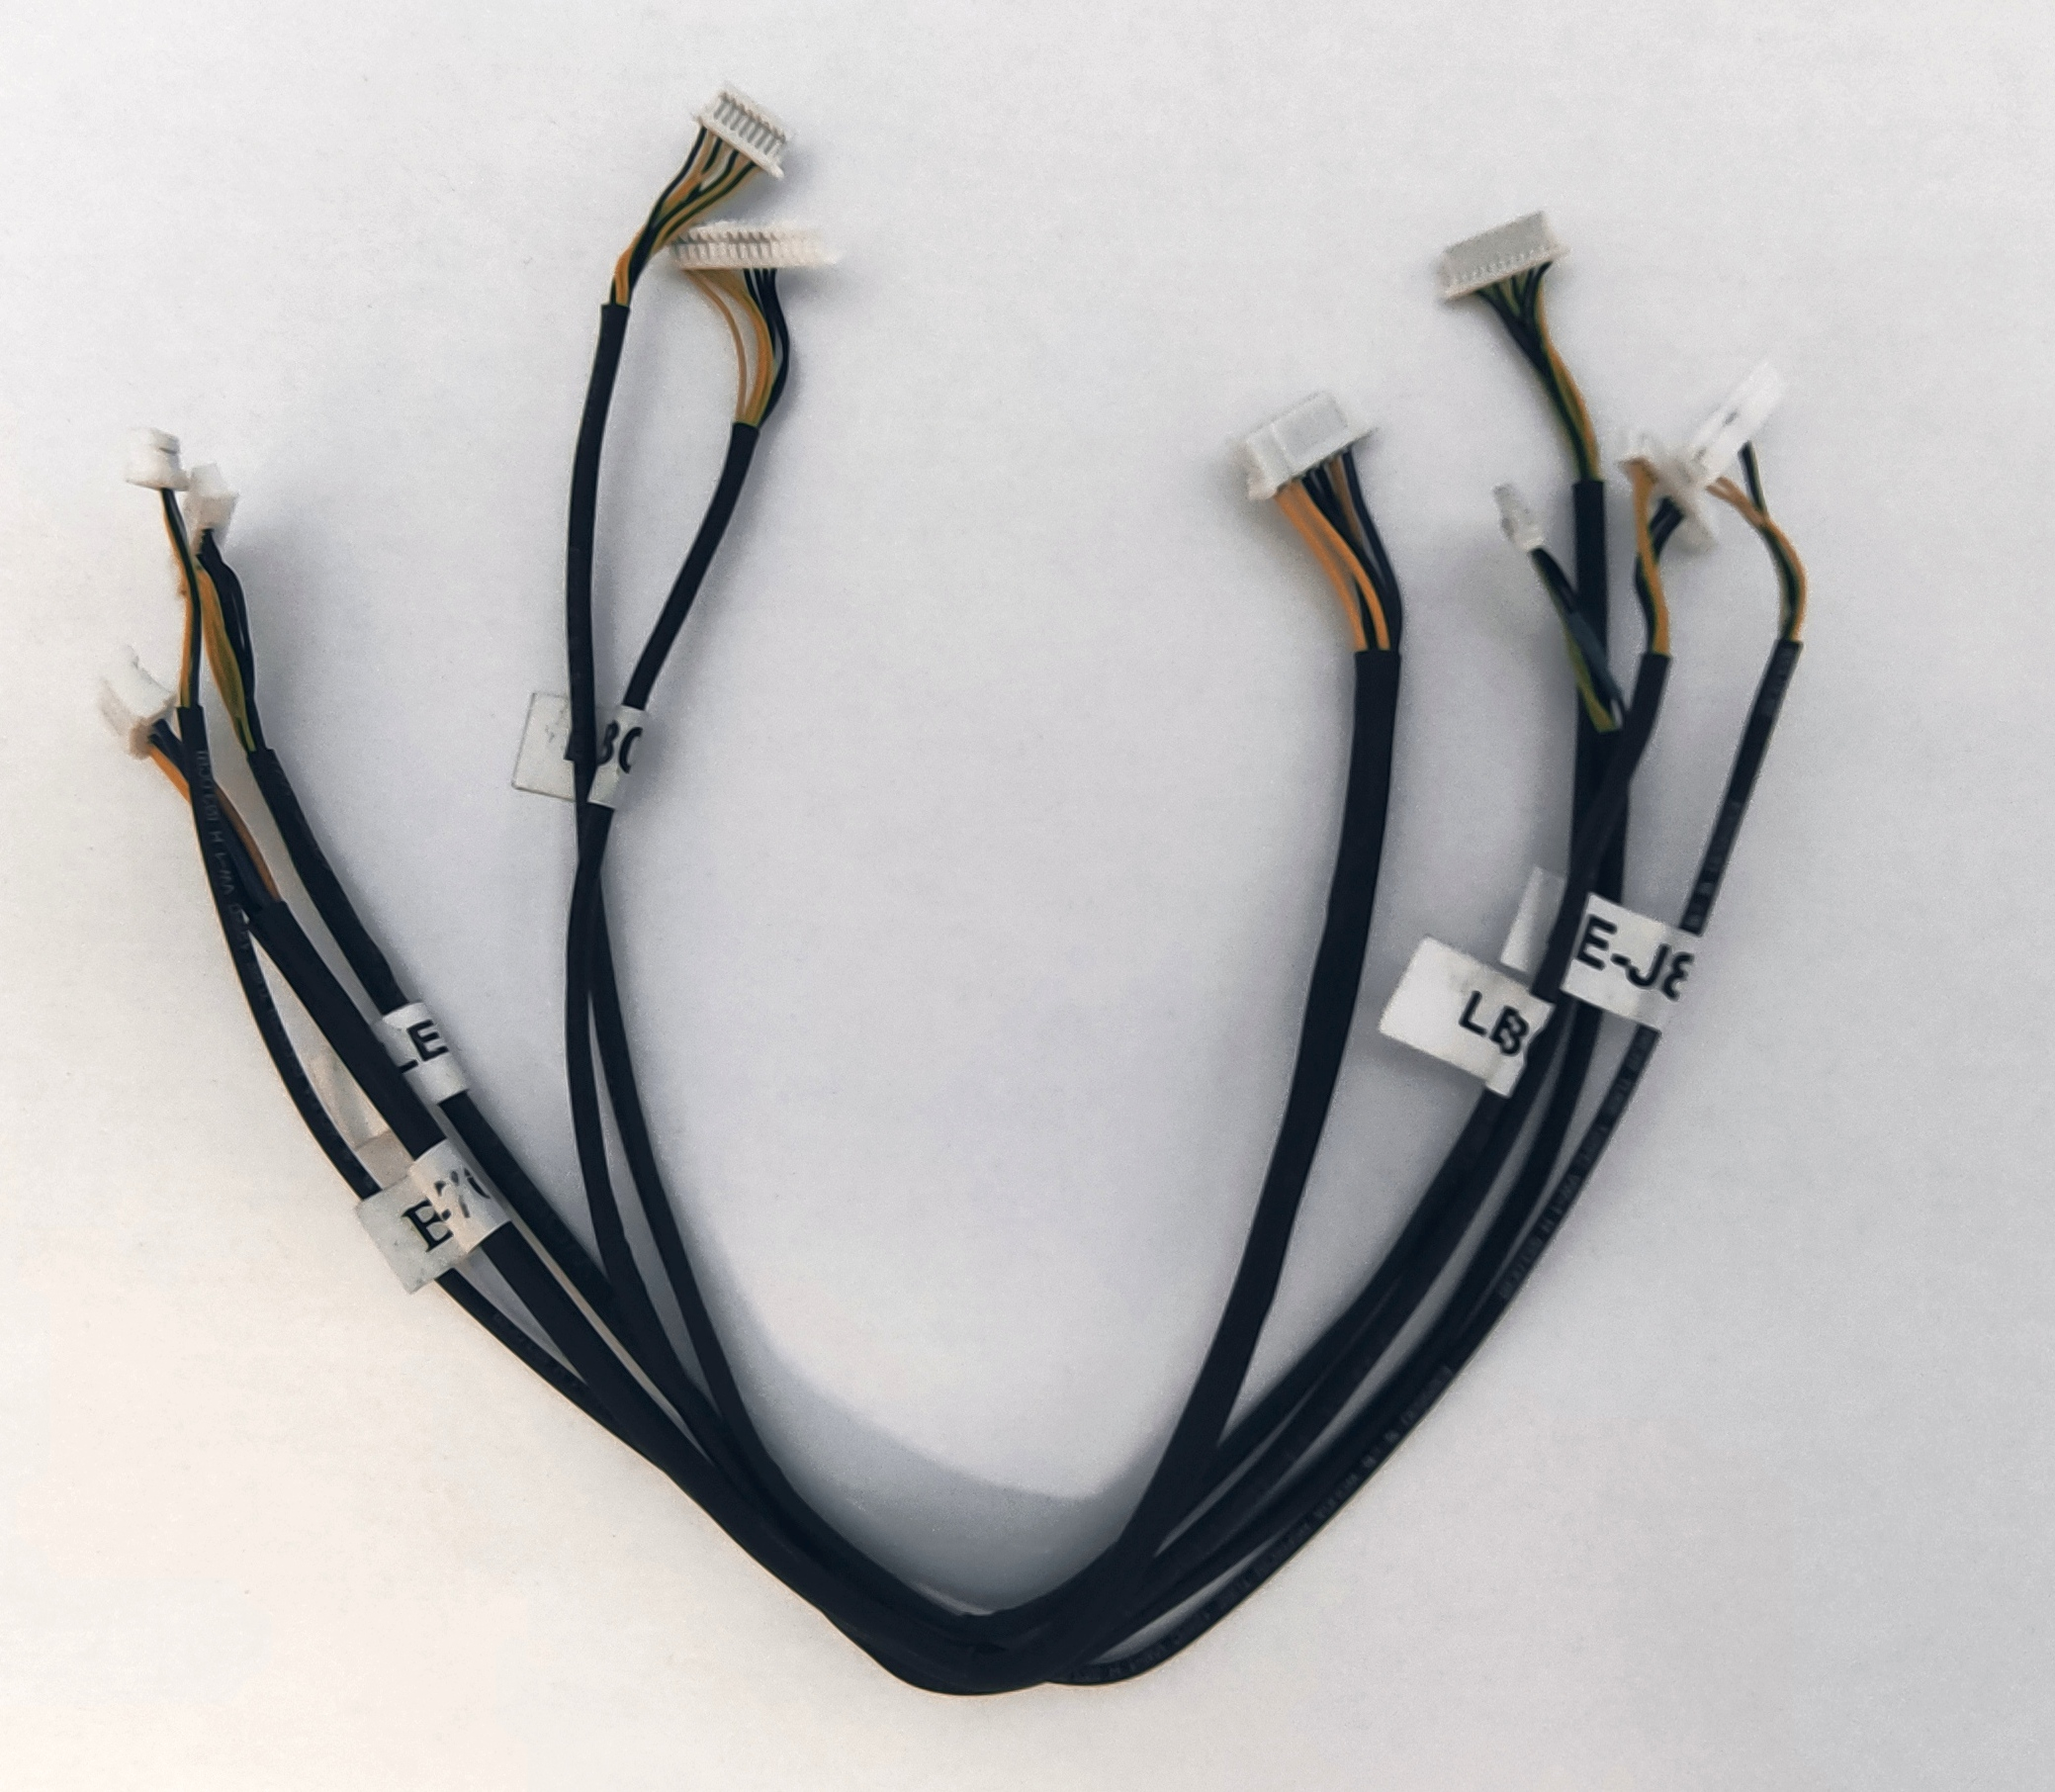 BT-CABLE-70660